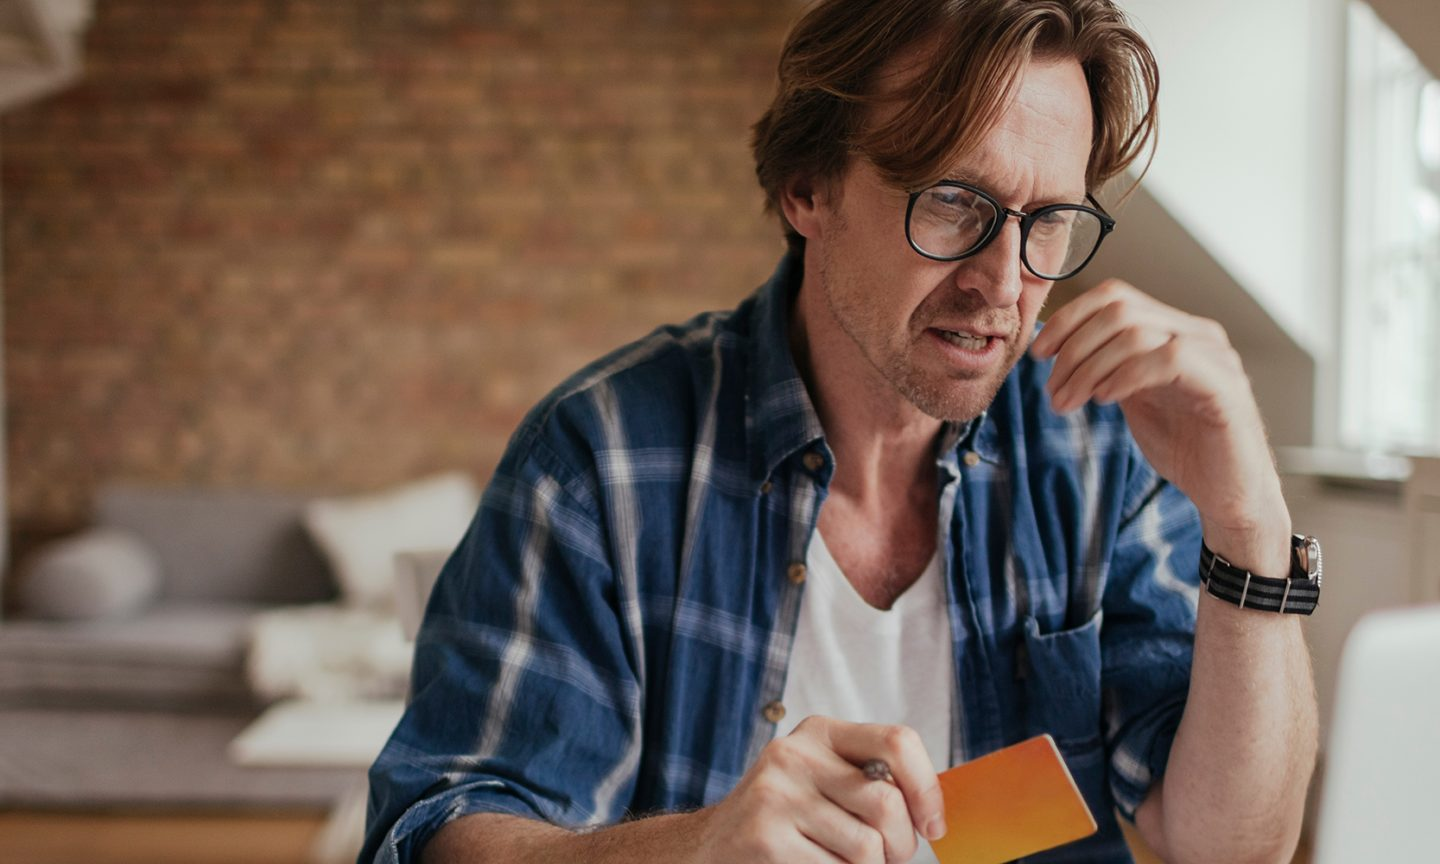 No-Fee Credit Cards to Consider If You Need to Downgrade - NerdWallet